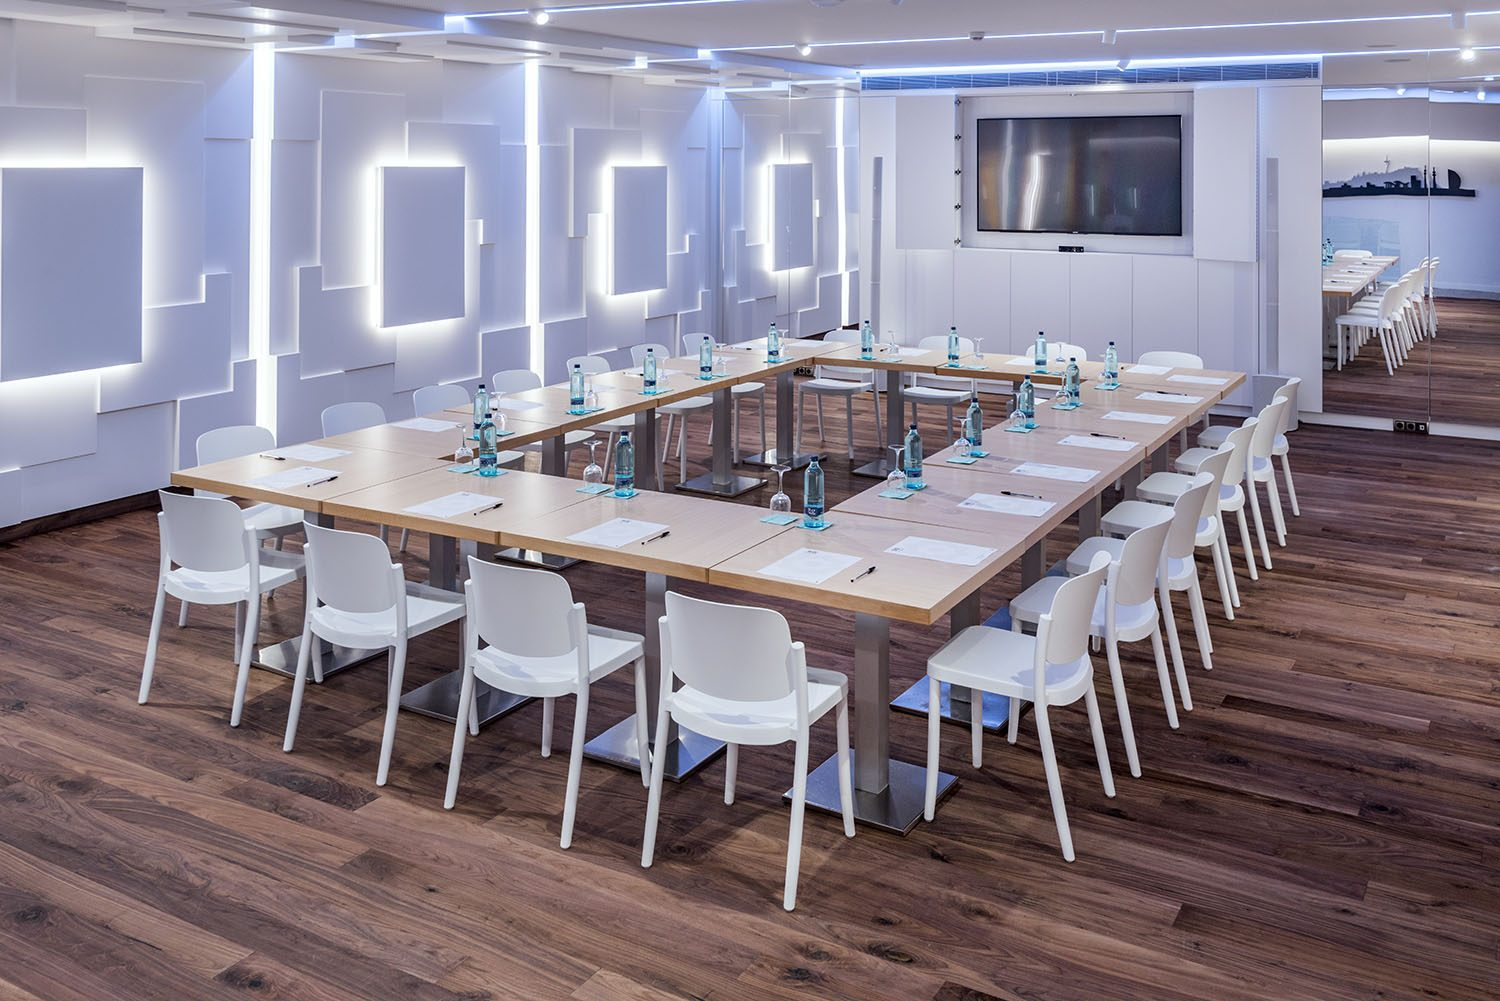 MEETING ROOM COWORKING HOTEL POR ROSA COLET